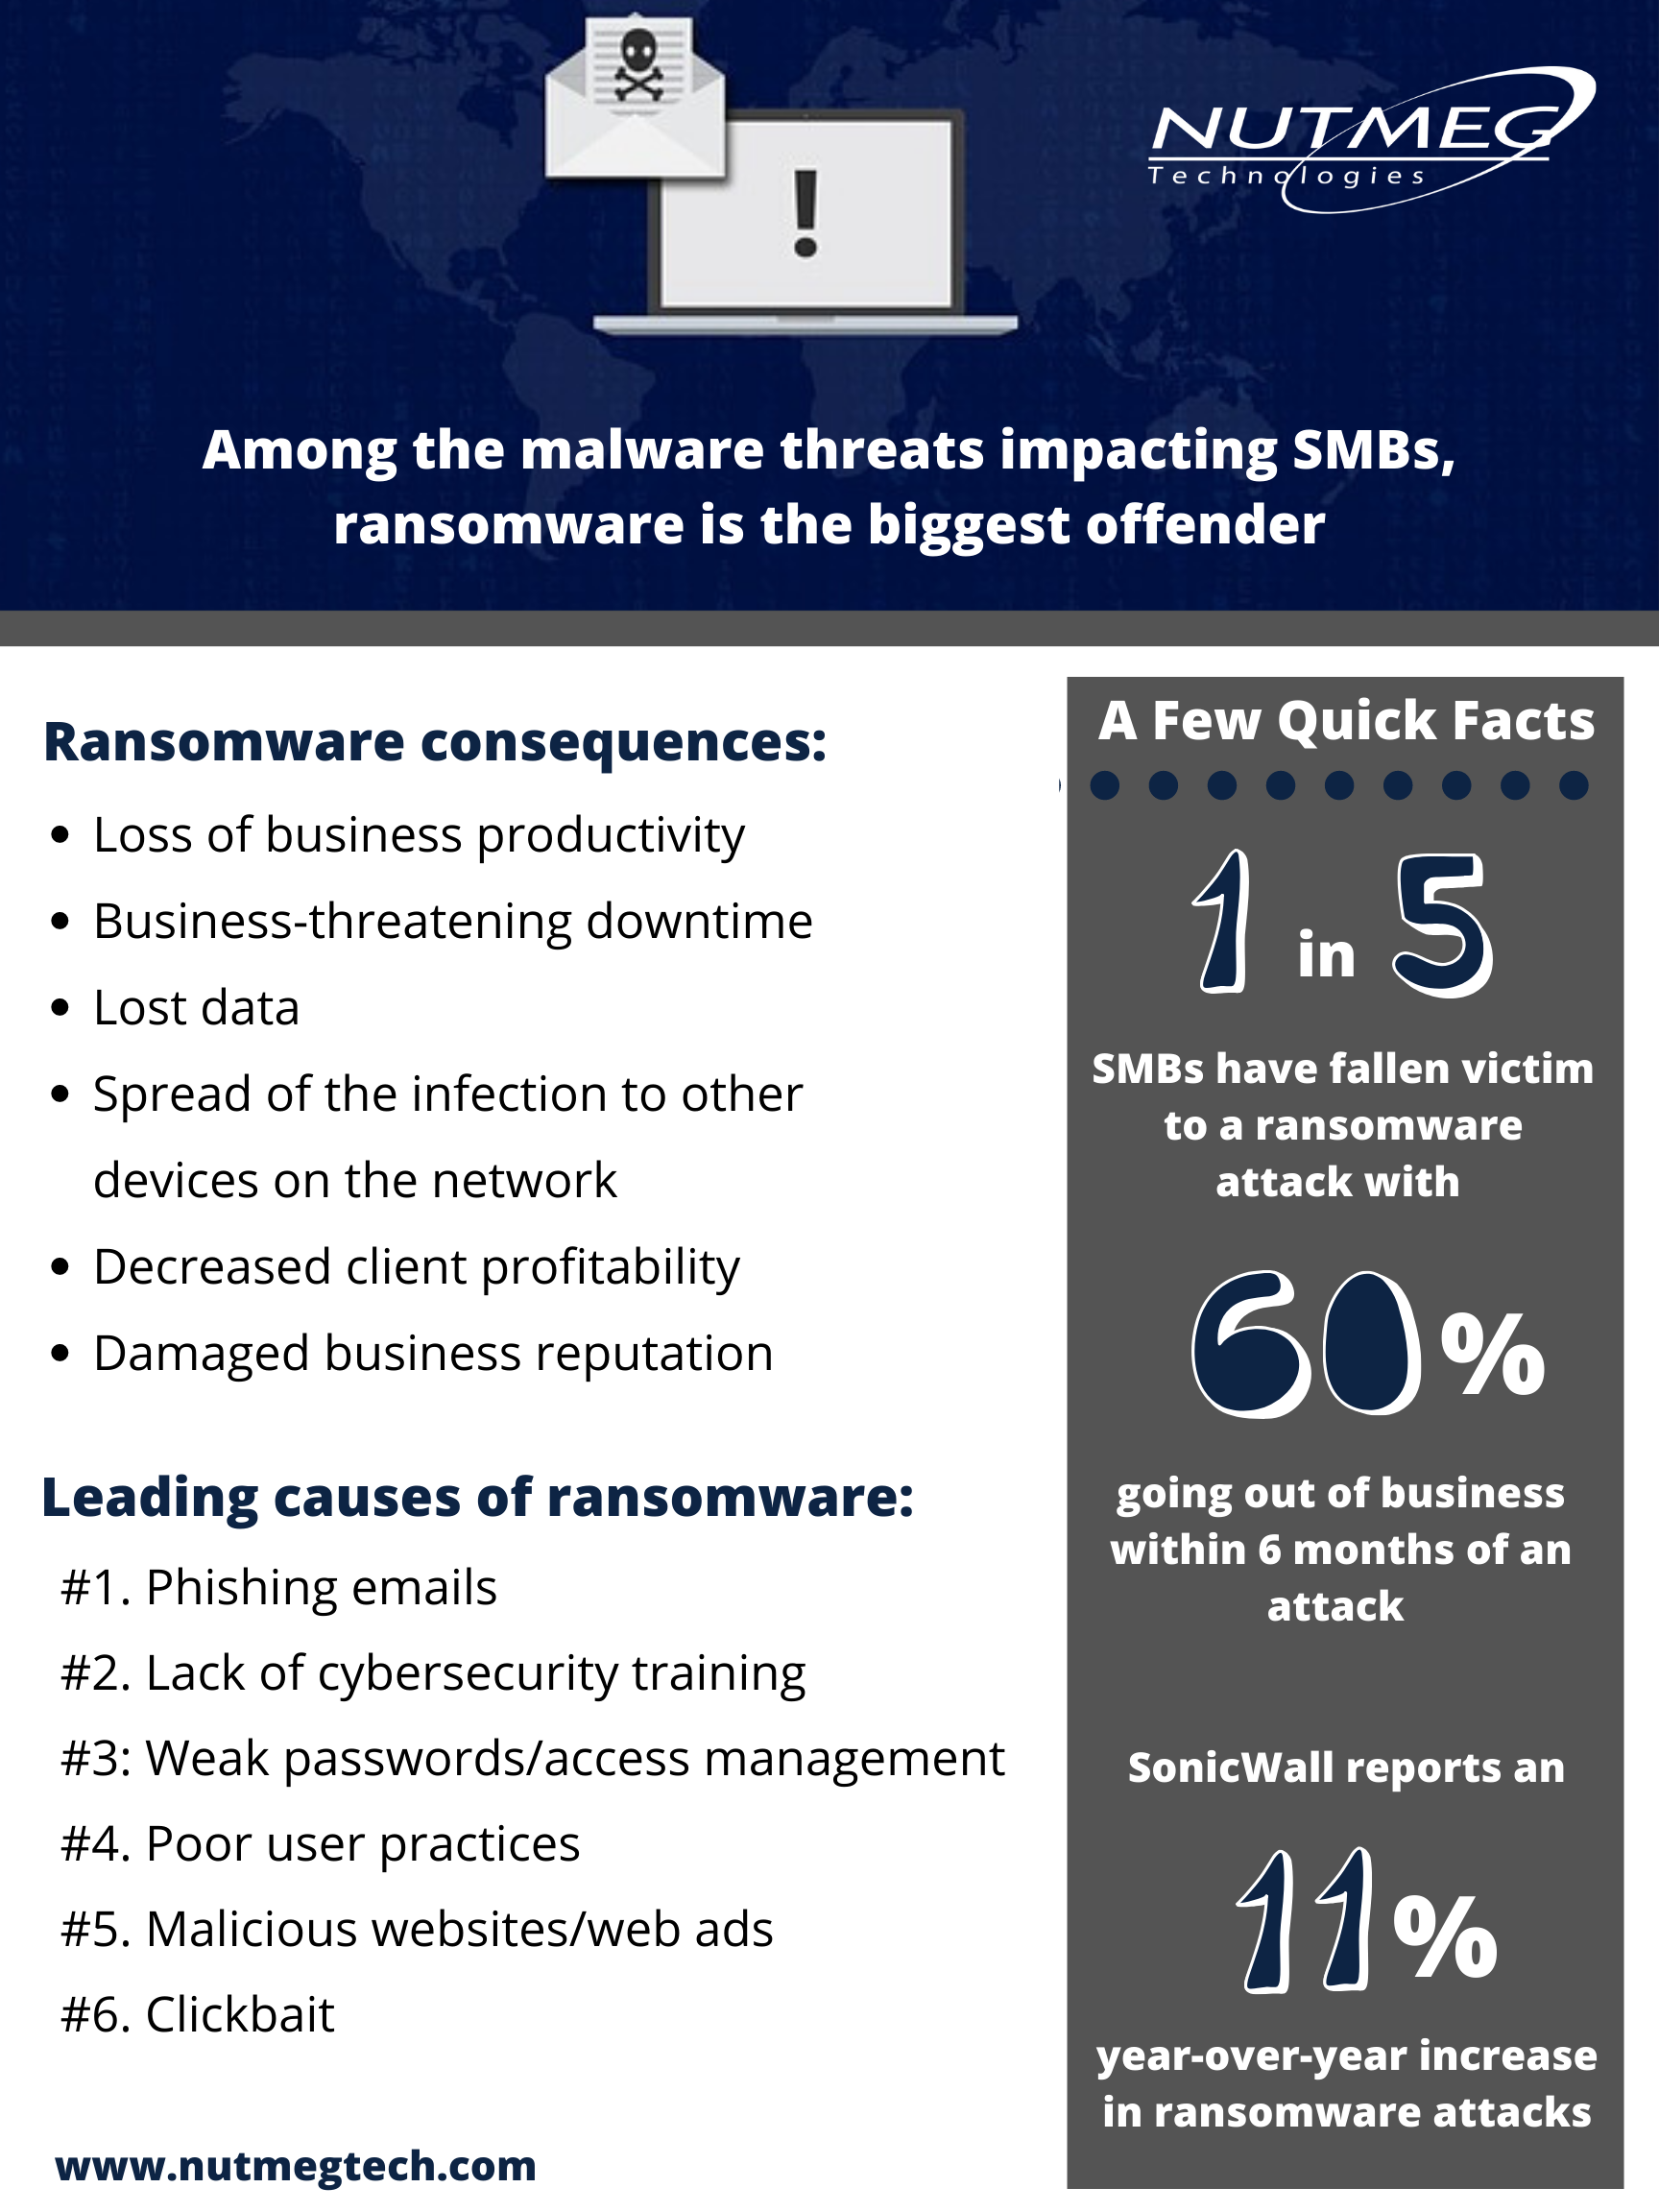 Among malware threats impacting SMBs, ransomware is the biggest offender